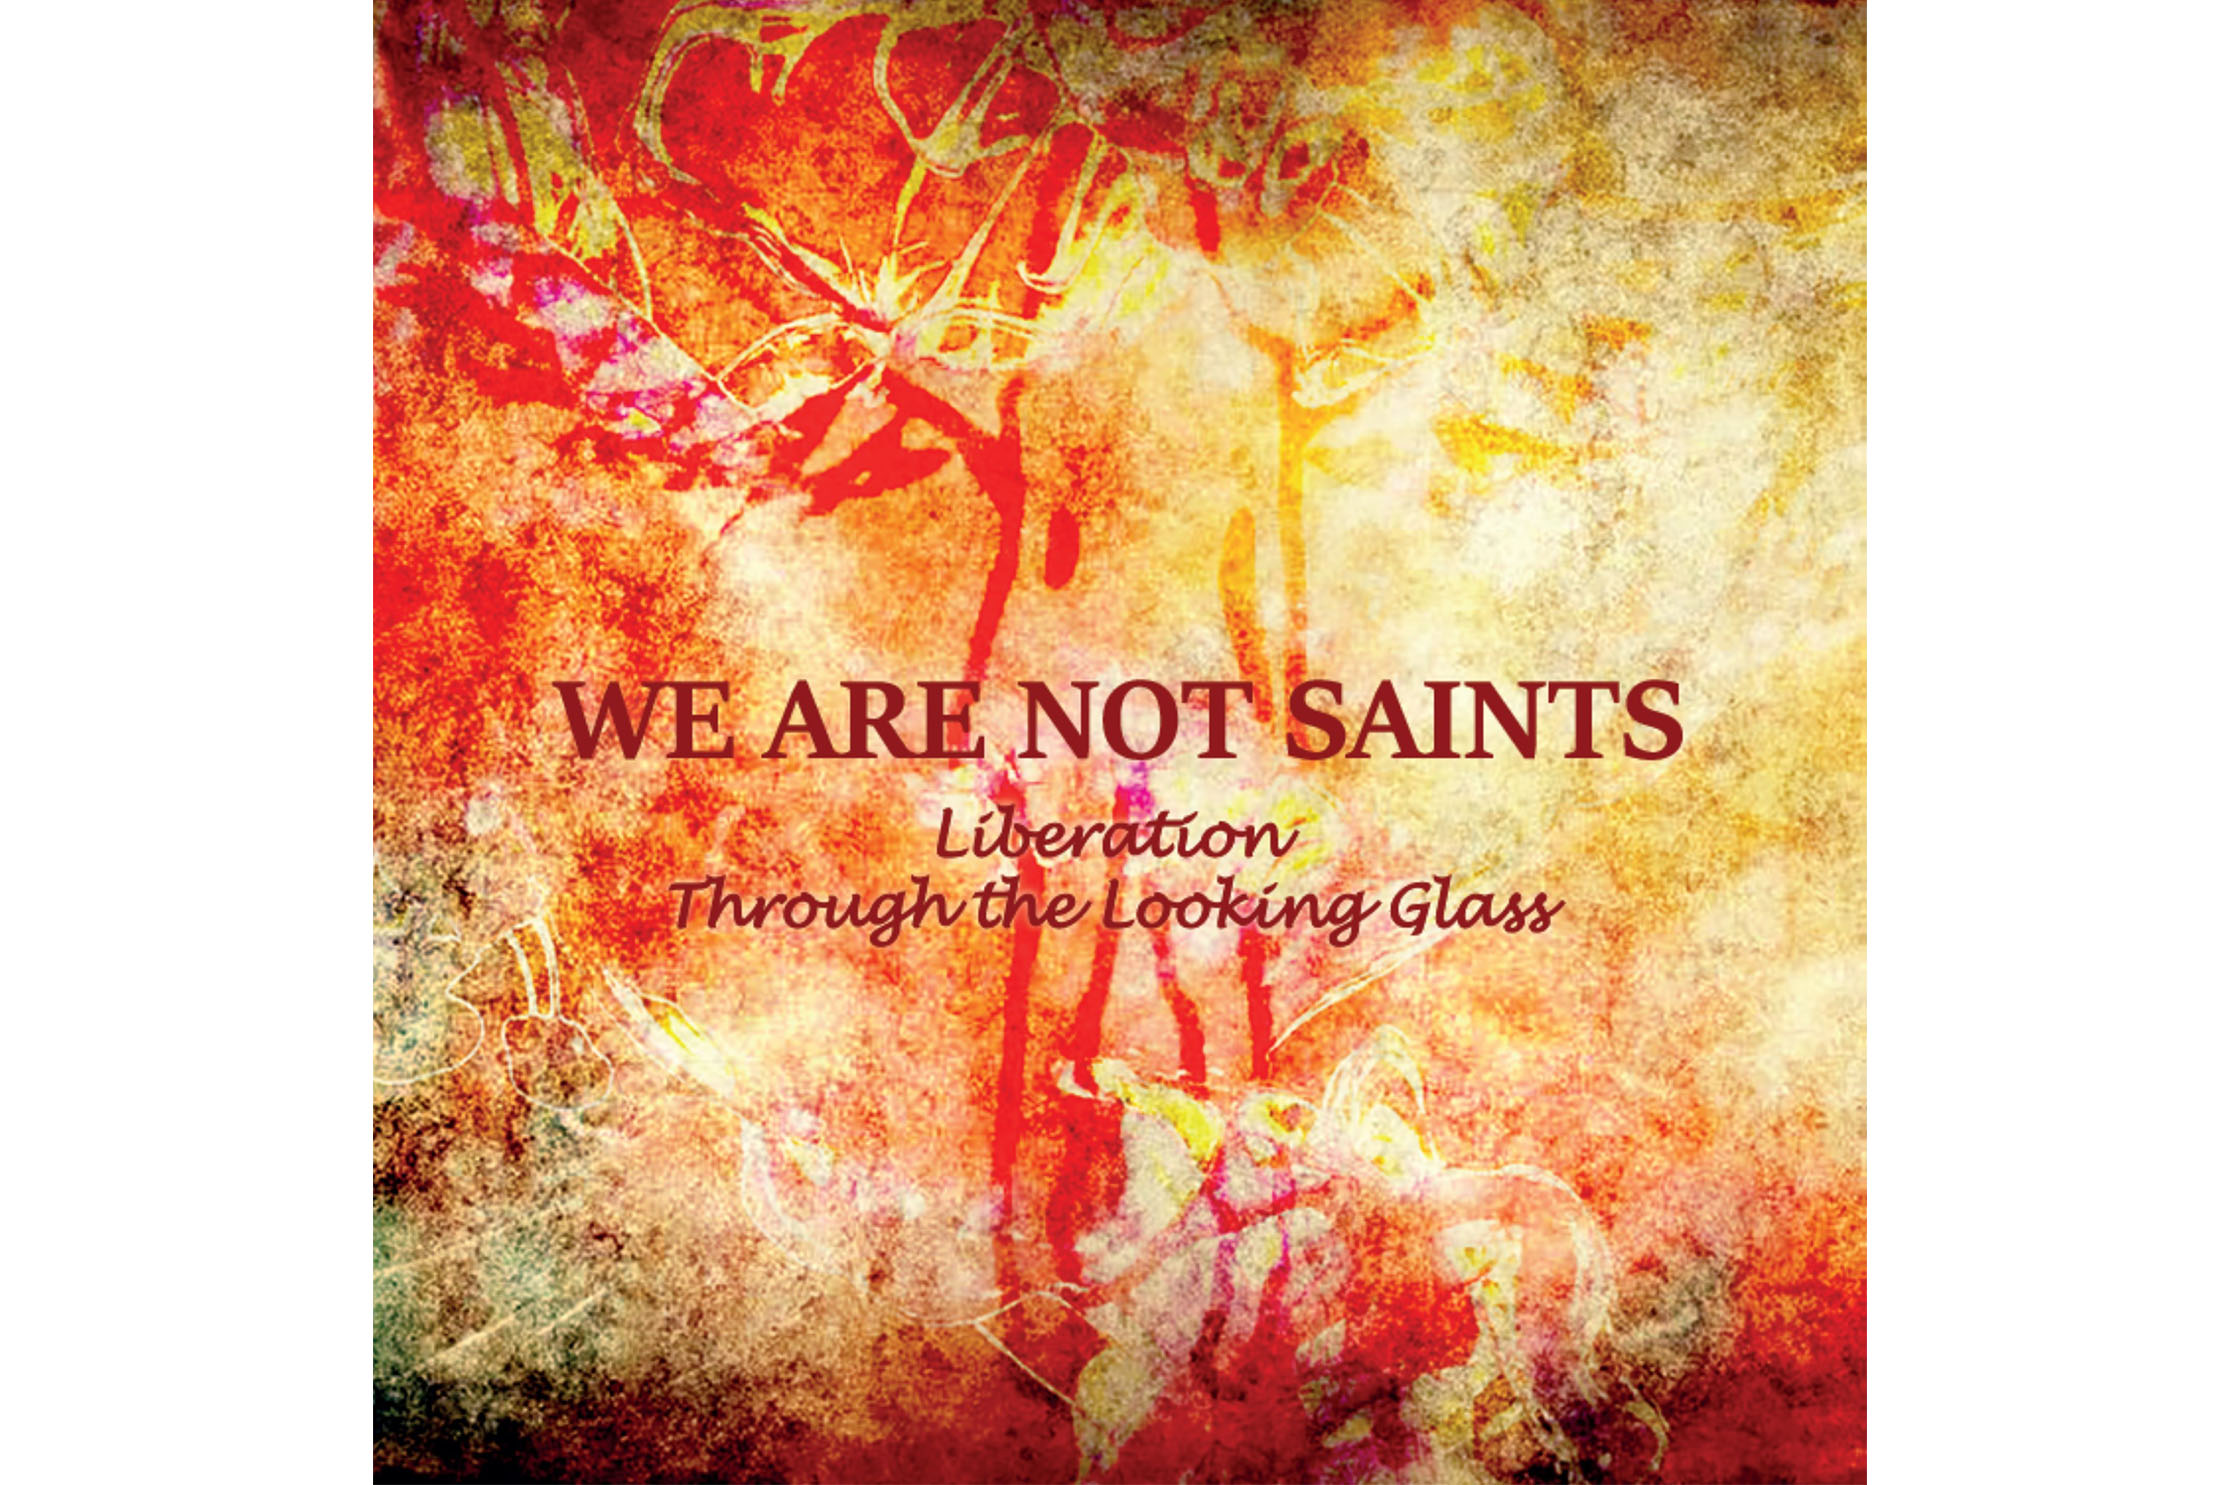 Continuing to help recovering addicts find healing in music making, We are Not Saints are about to release their compilation album, Liberation Through the Looking Glass